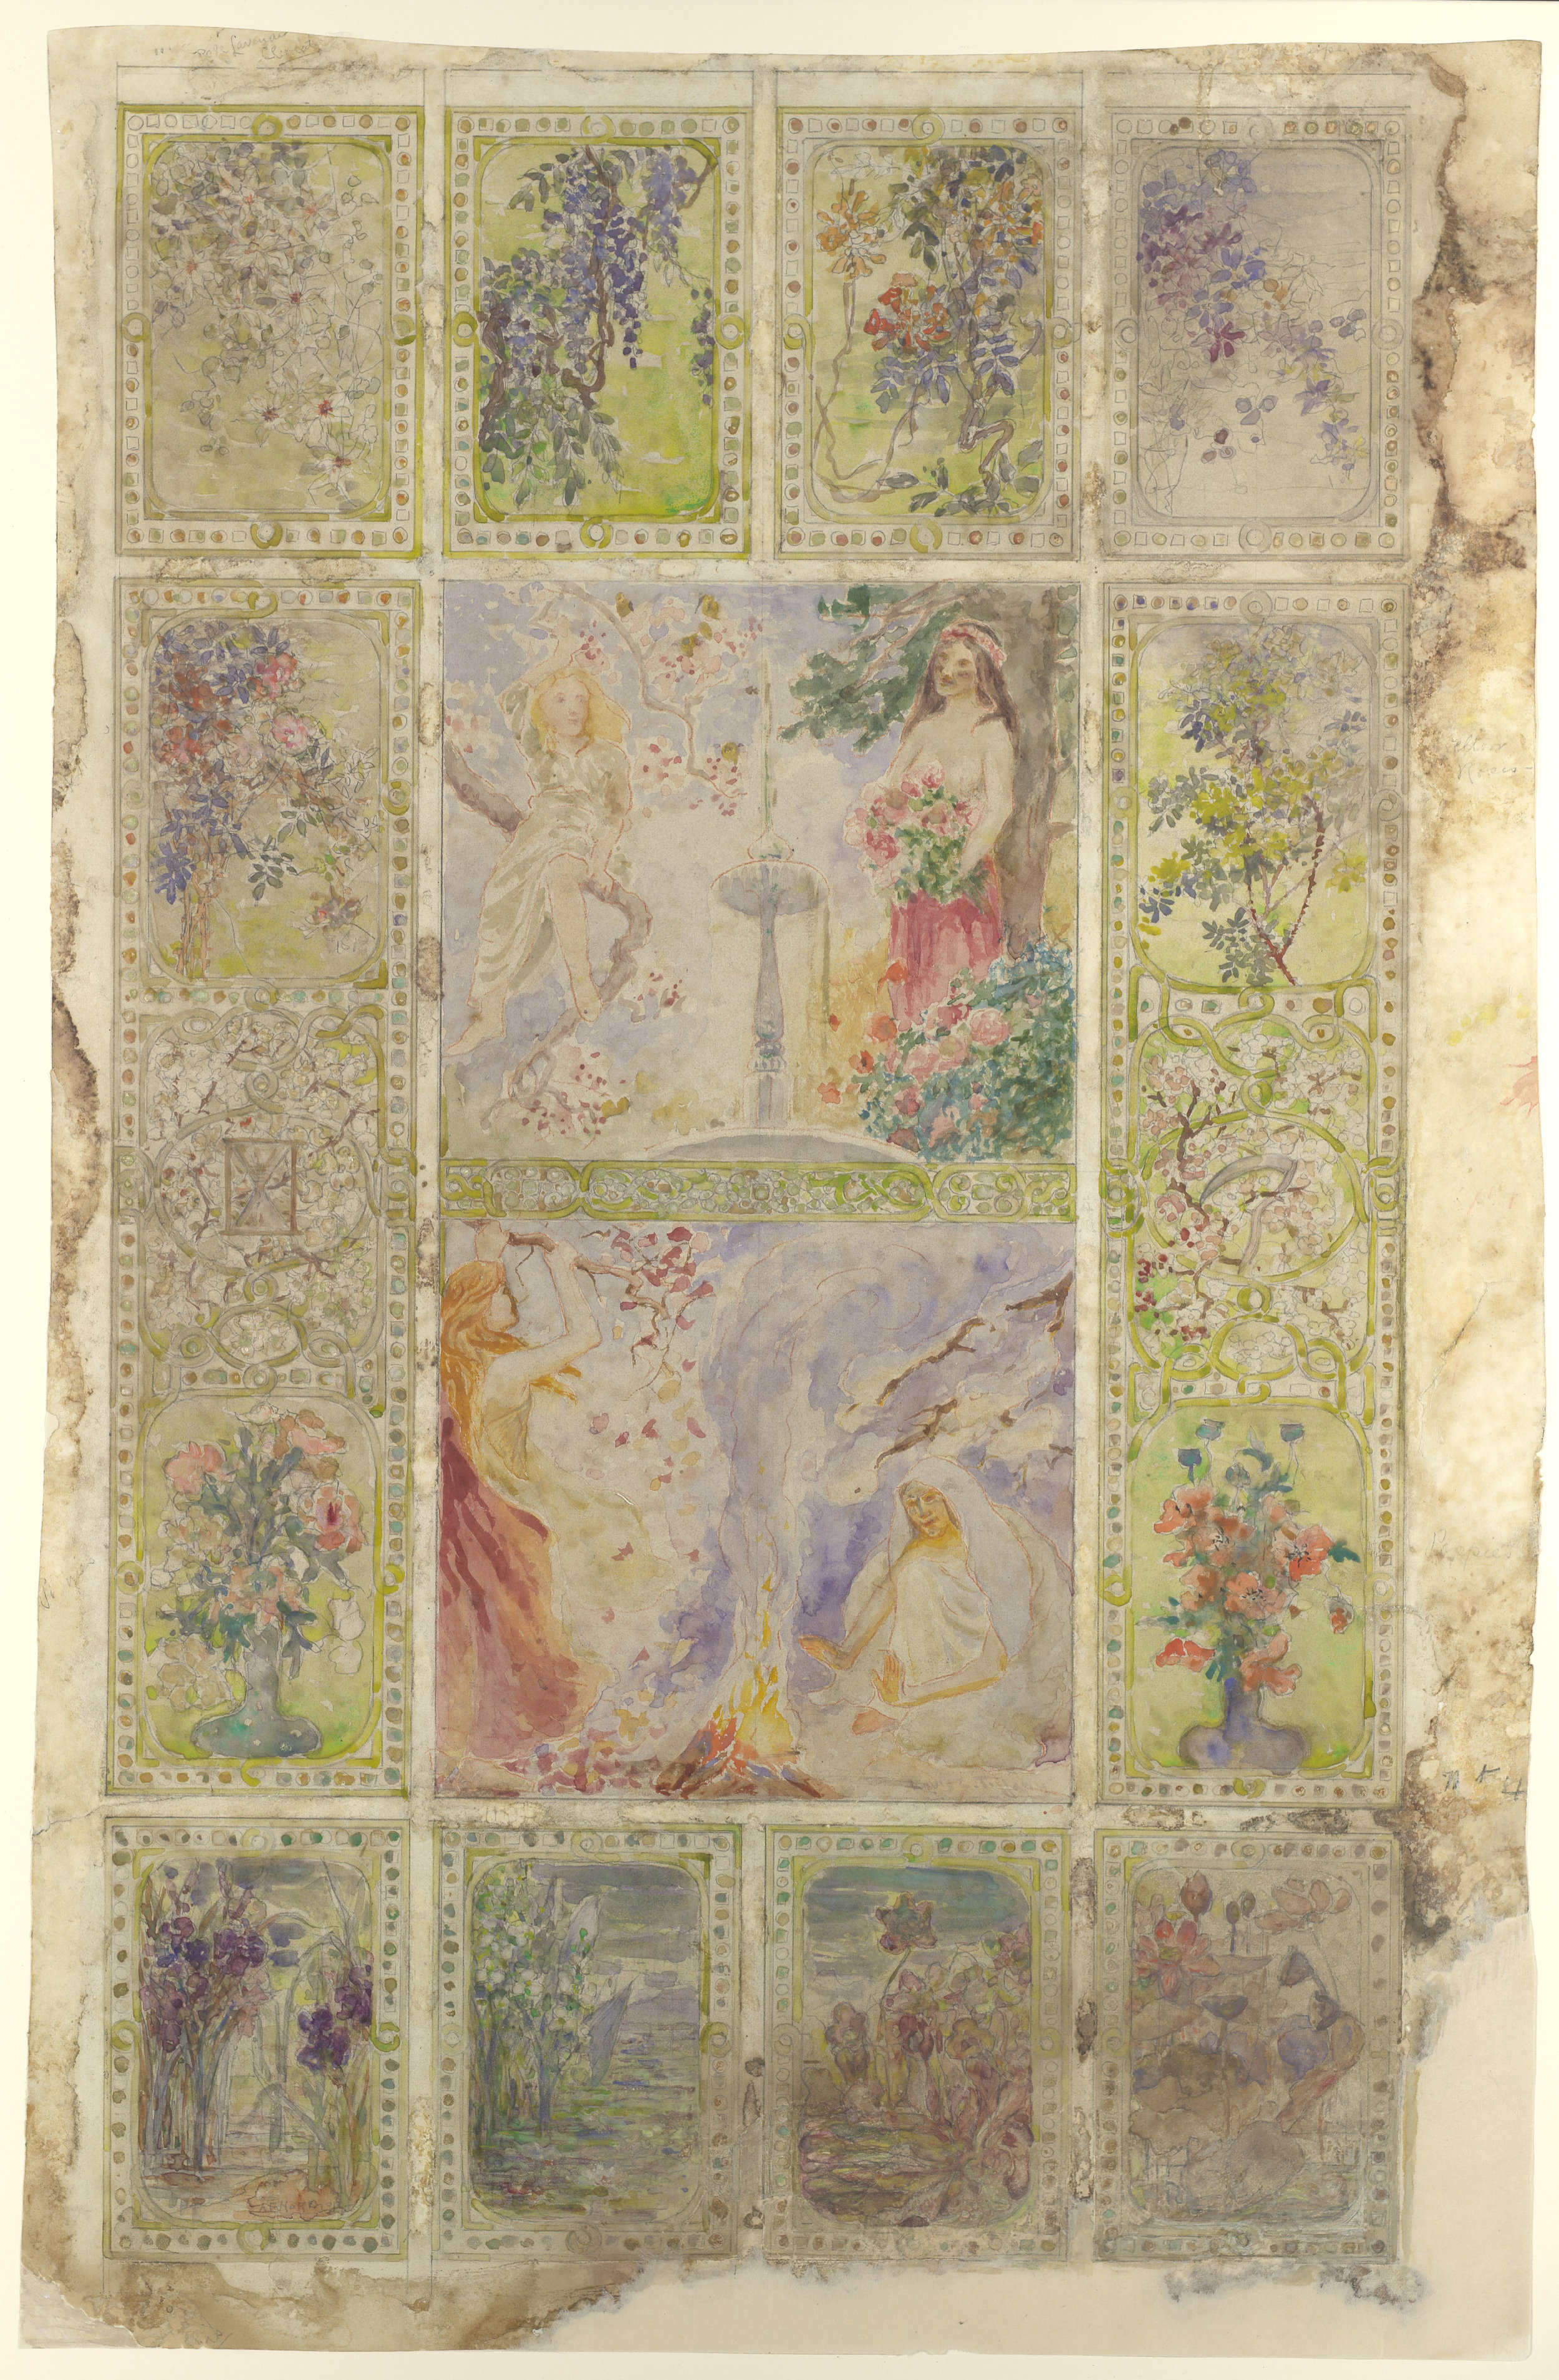 'Four Seasons', ca. 1897-1899. Louis Comfort Tiffany (American, New York 1848–1933 New York) and Agnes F. Northrop (1857–1953). Tiffany Glass and Decorating Company (American, 1892–1902). The Metropolitan Museum of Art, accession number 67.654.317. Purchase, Walter Hoving and Julia T. Weld Gifts and Dodge Fund, 1967.